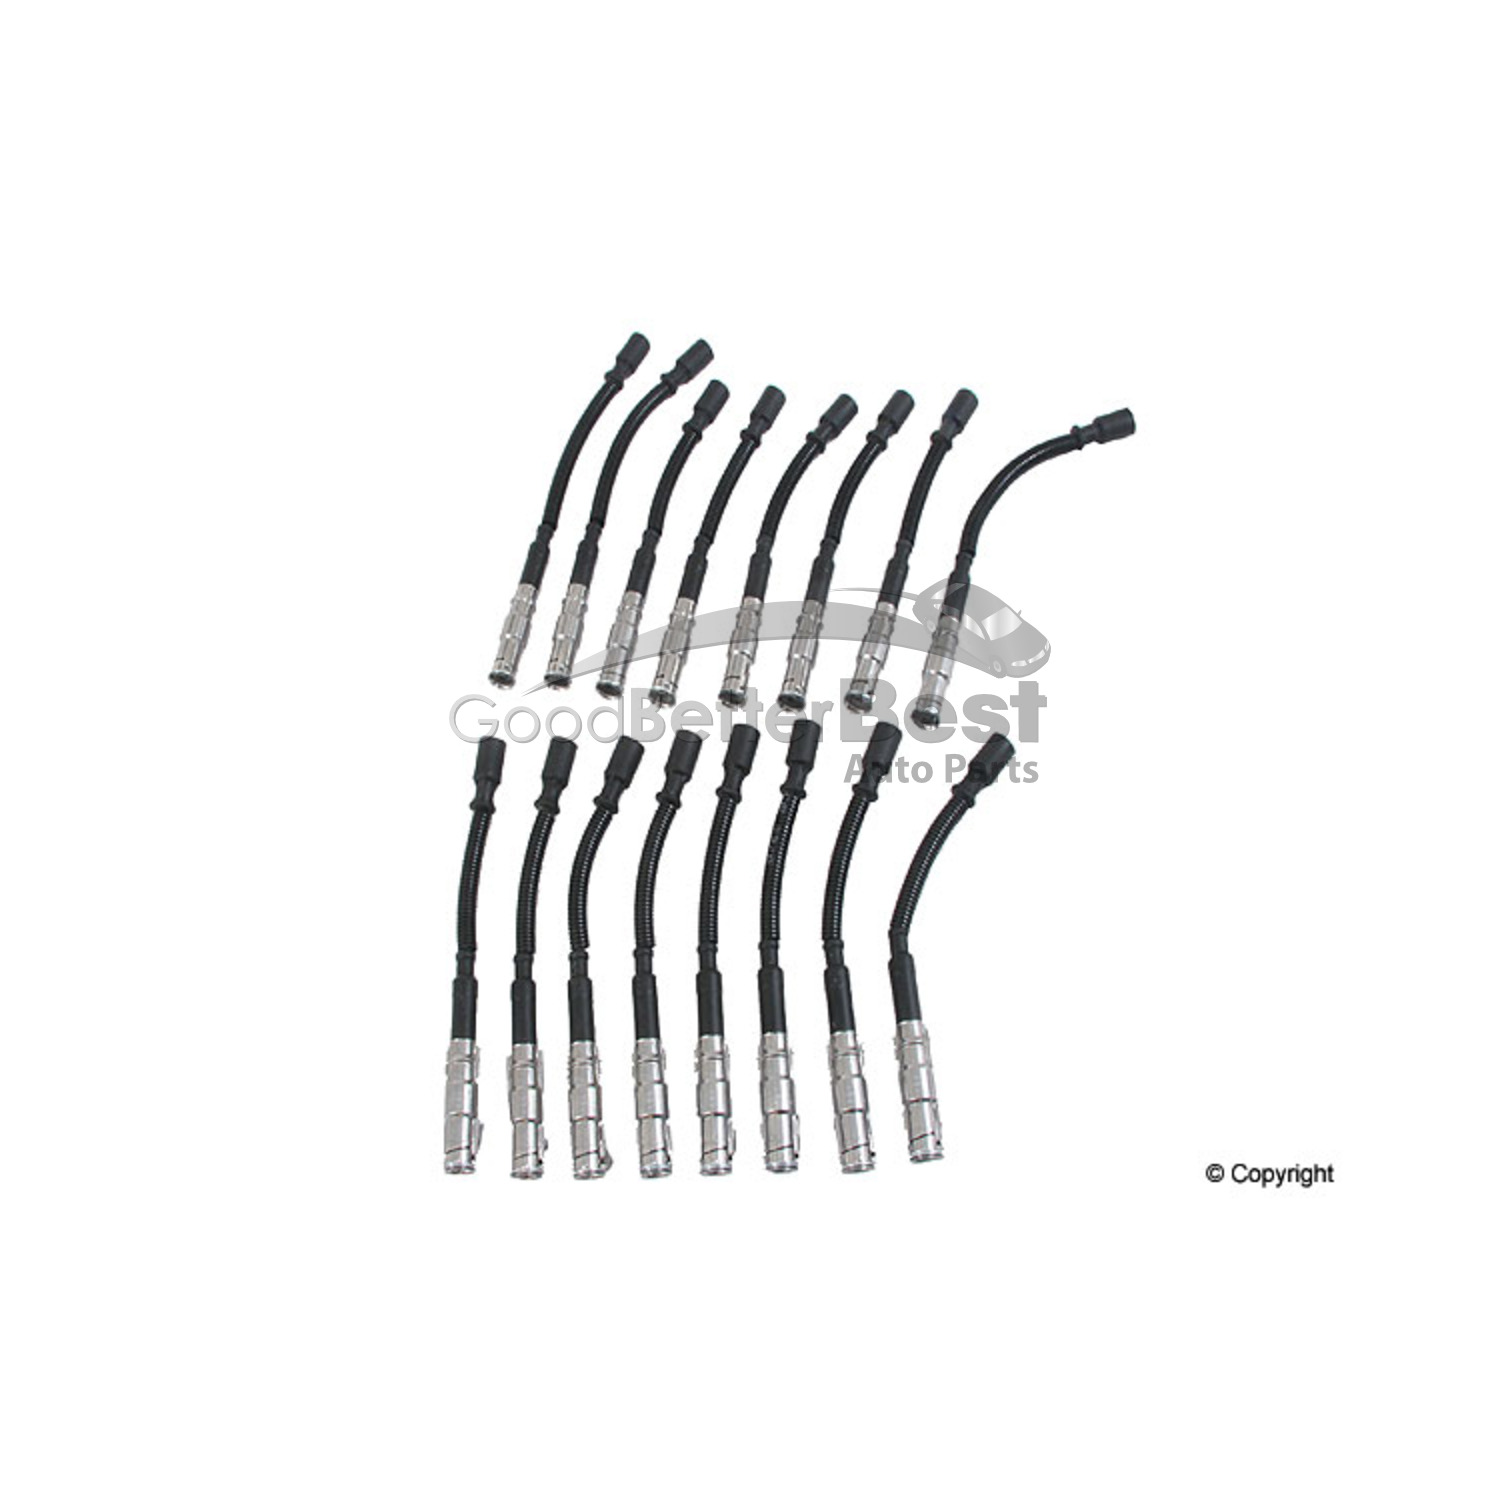 New Beru Spark Plug Wire Set Zef For